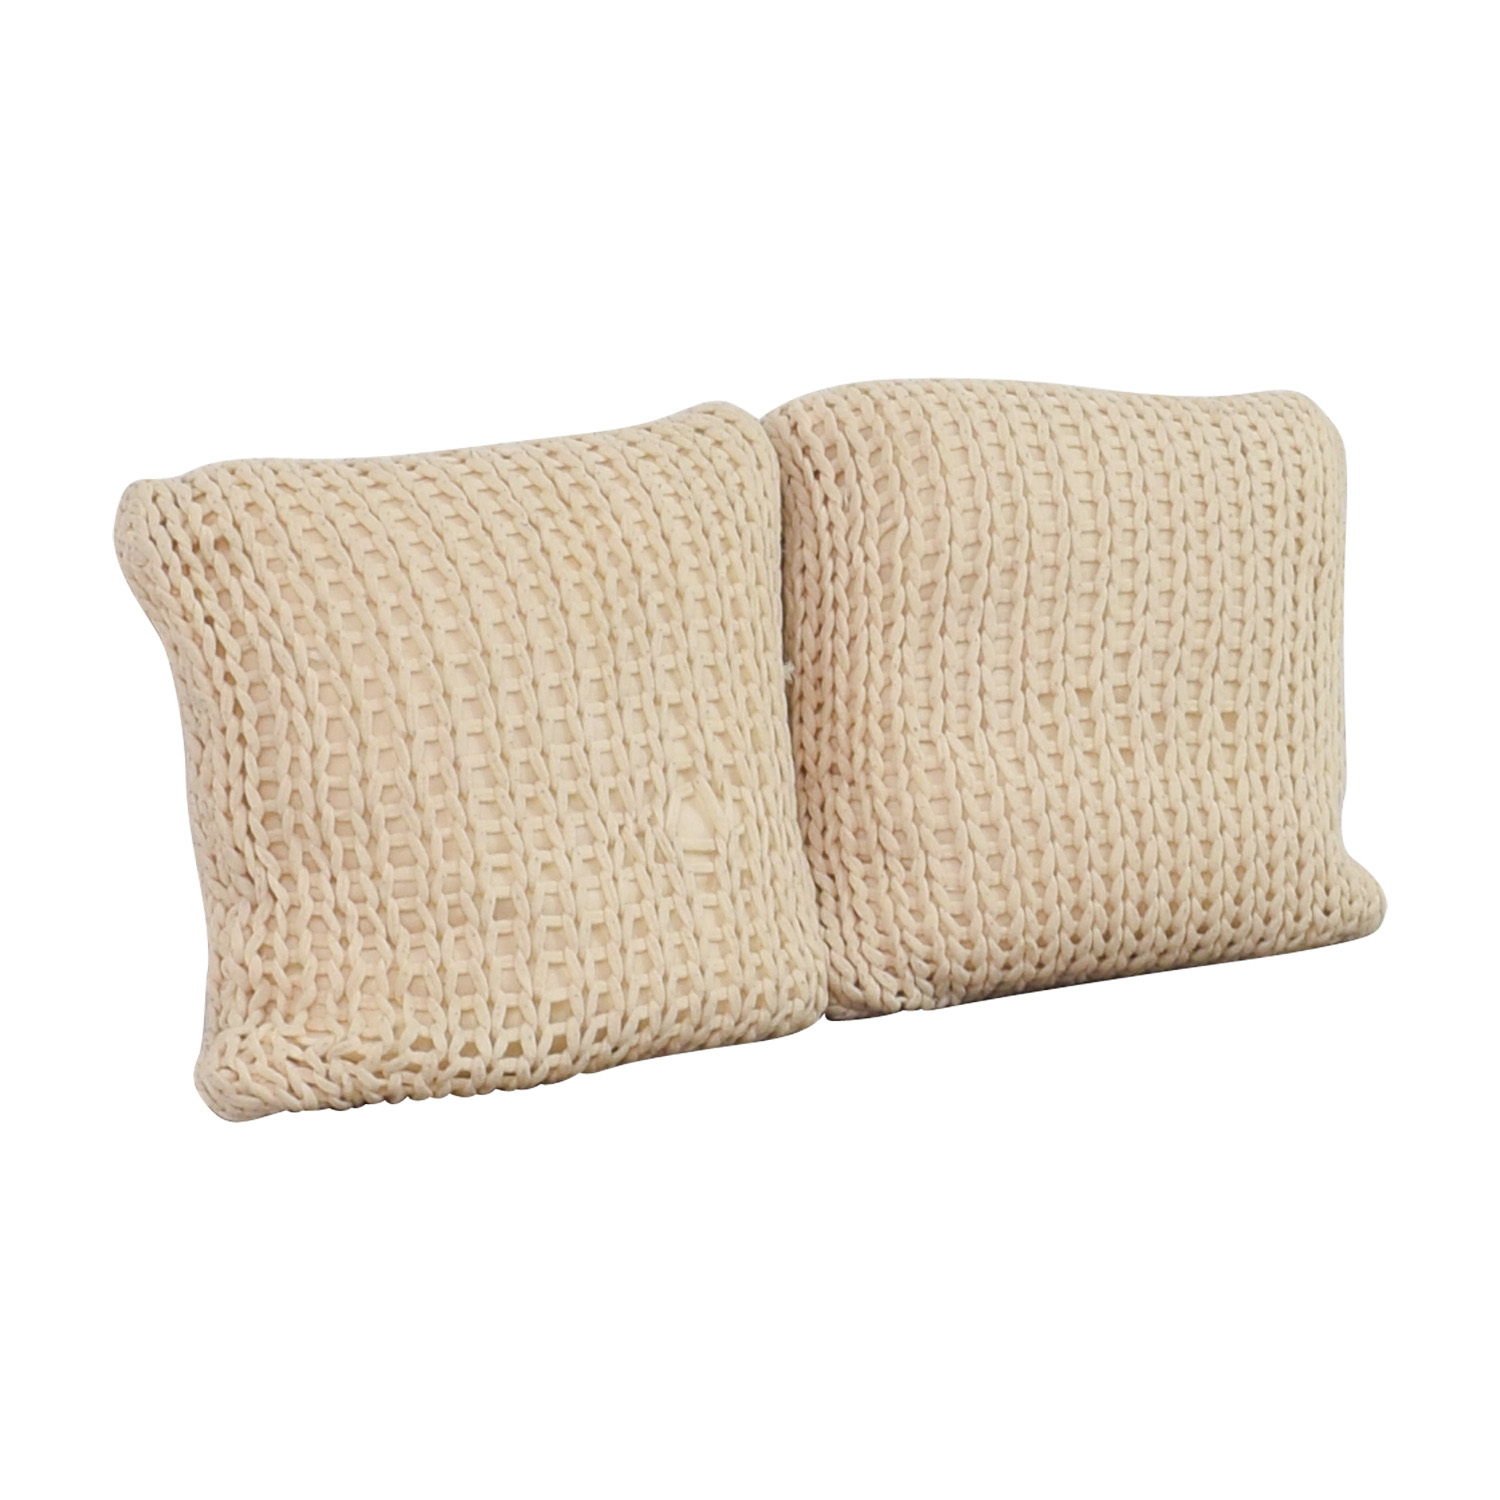 Crate & Barrel Crate & Barrel Ivory Holden Pillows nyc